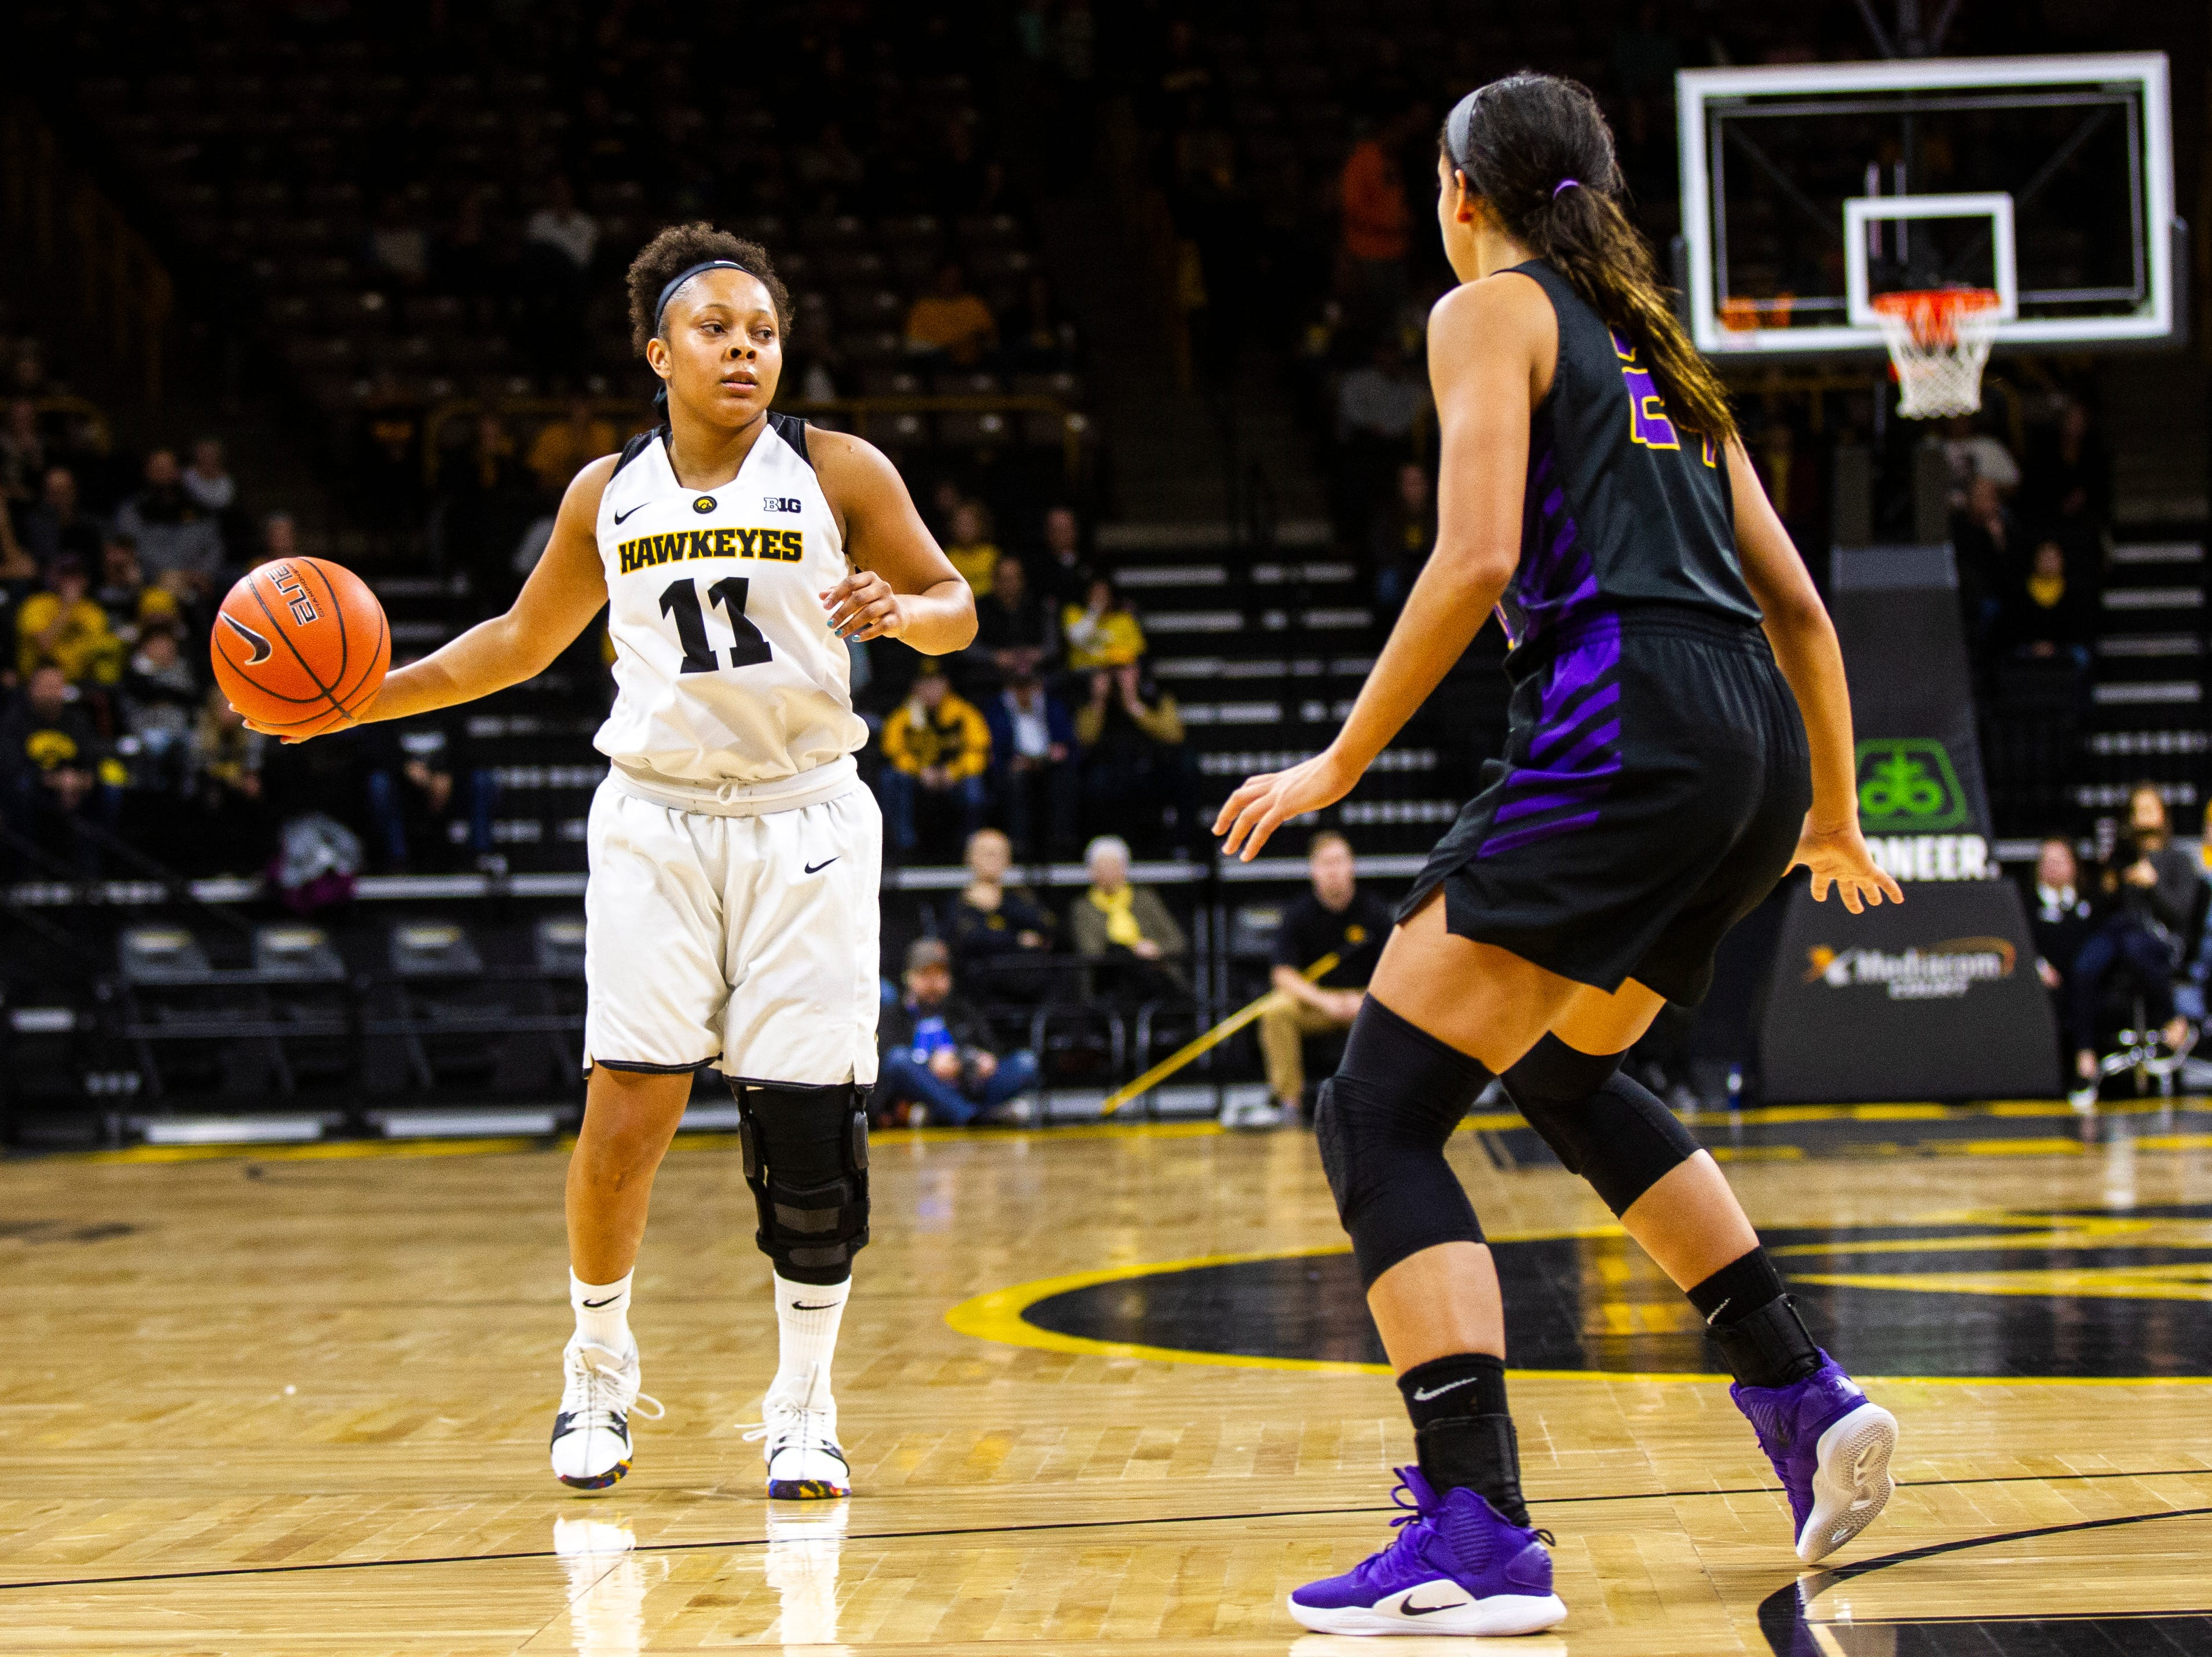 Iowa guard Tania Davis (11) takes the ball up court during a NCAA women's basketball game on Sunday, Dec. 16, 2018, at Carver-Hawkeye Arena in Iowa City.